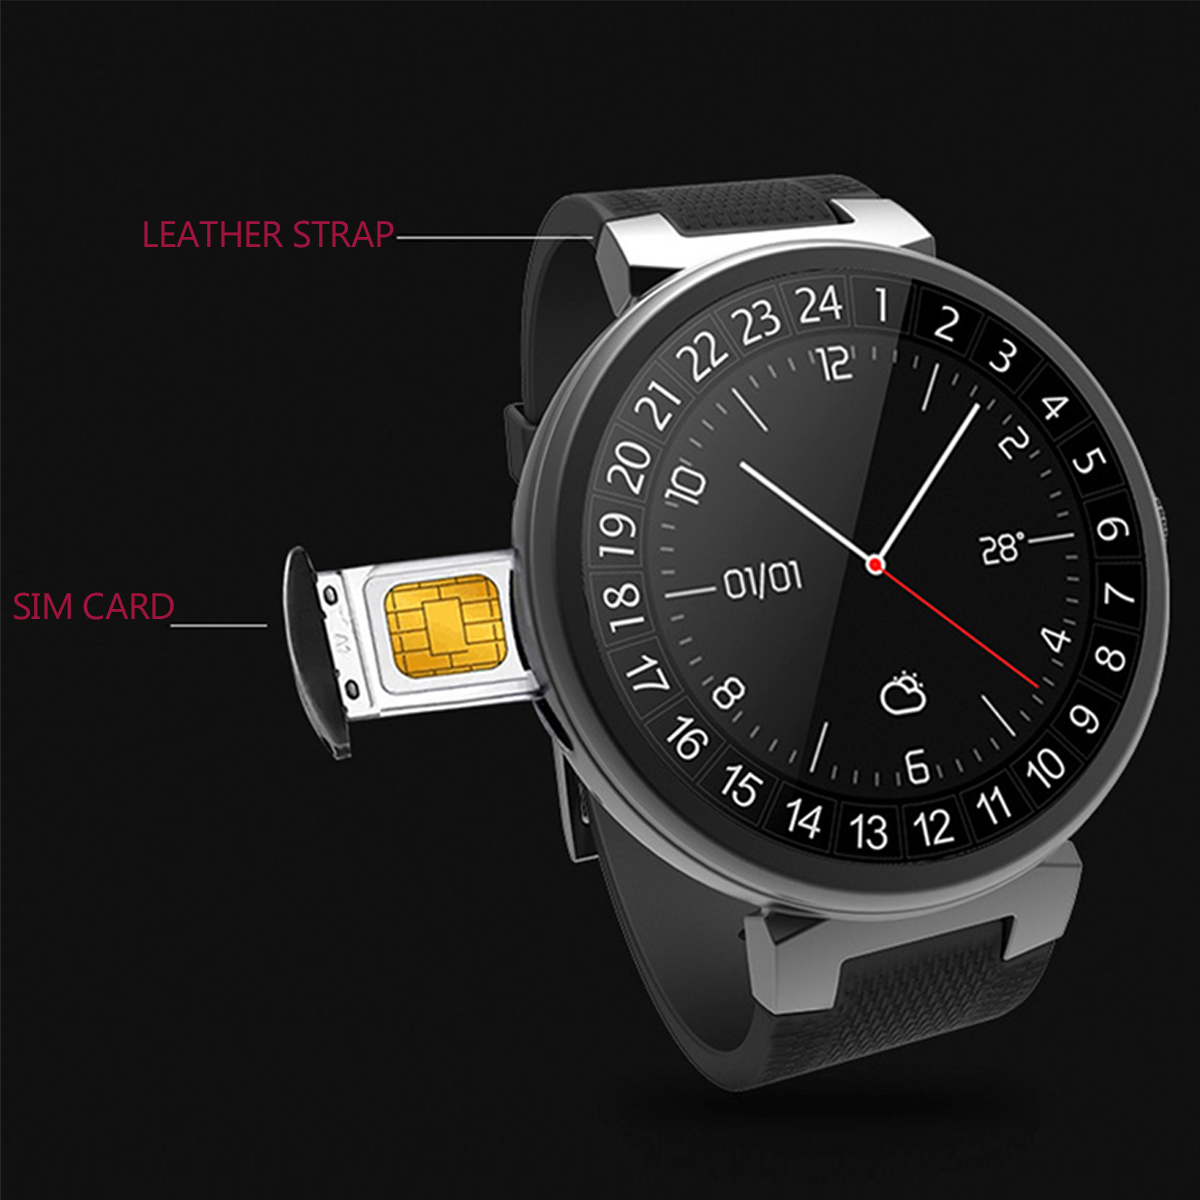 3G Android 5.1 2+16GB WIFI bluetooth SIM GSM GPS Camera Heart Rate Smart Watch